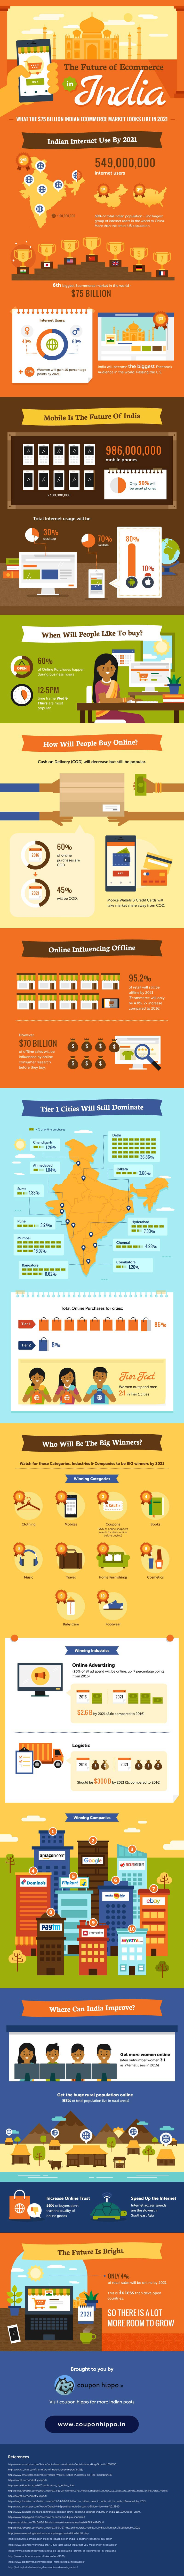 ecommerce_in_india